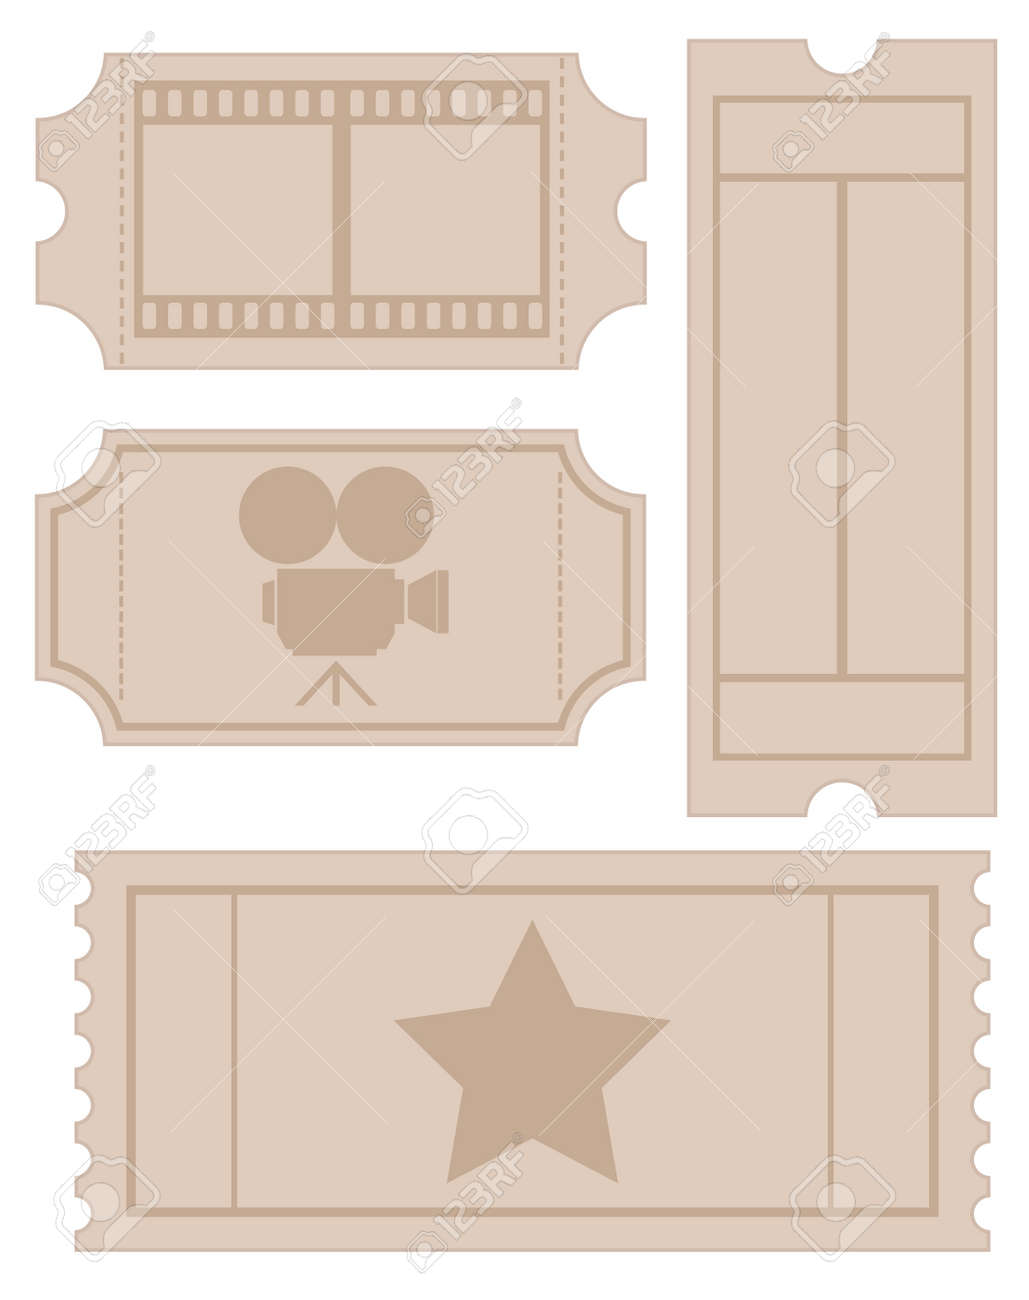 Vintage Cinema Ticket Royalty Free Cliparts Vectors And – Theater Ticket Template